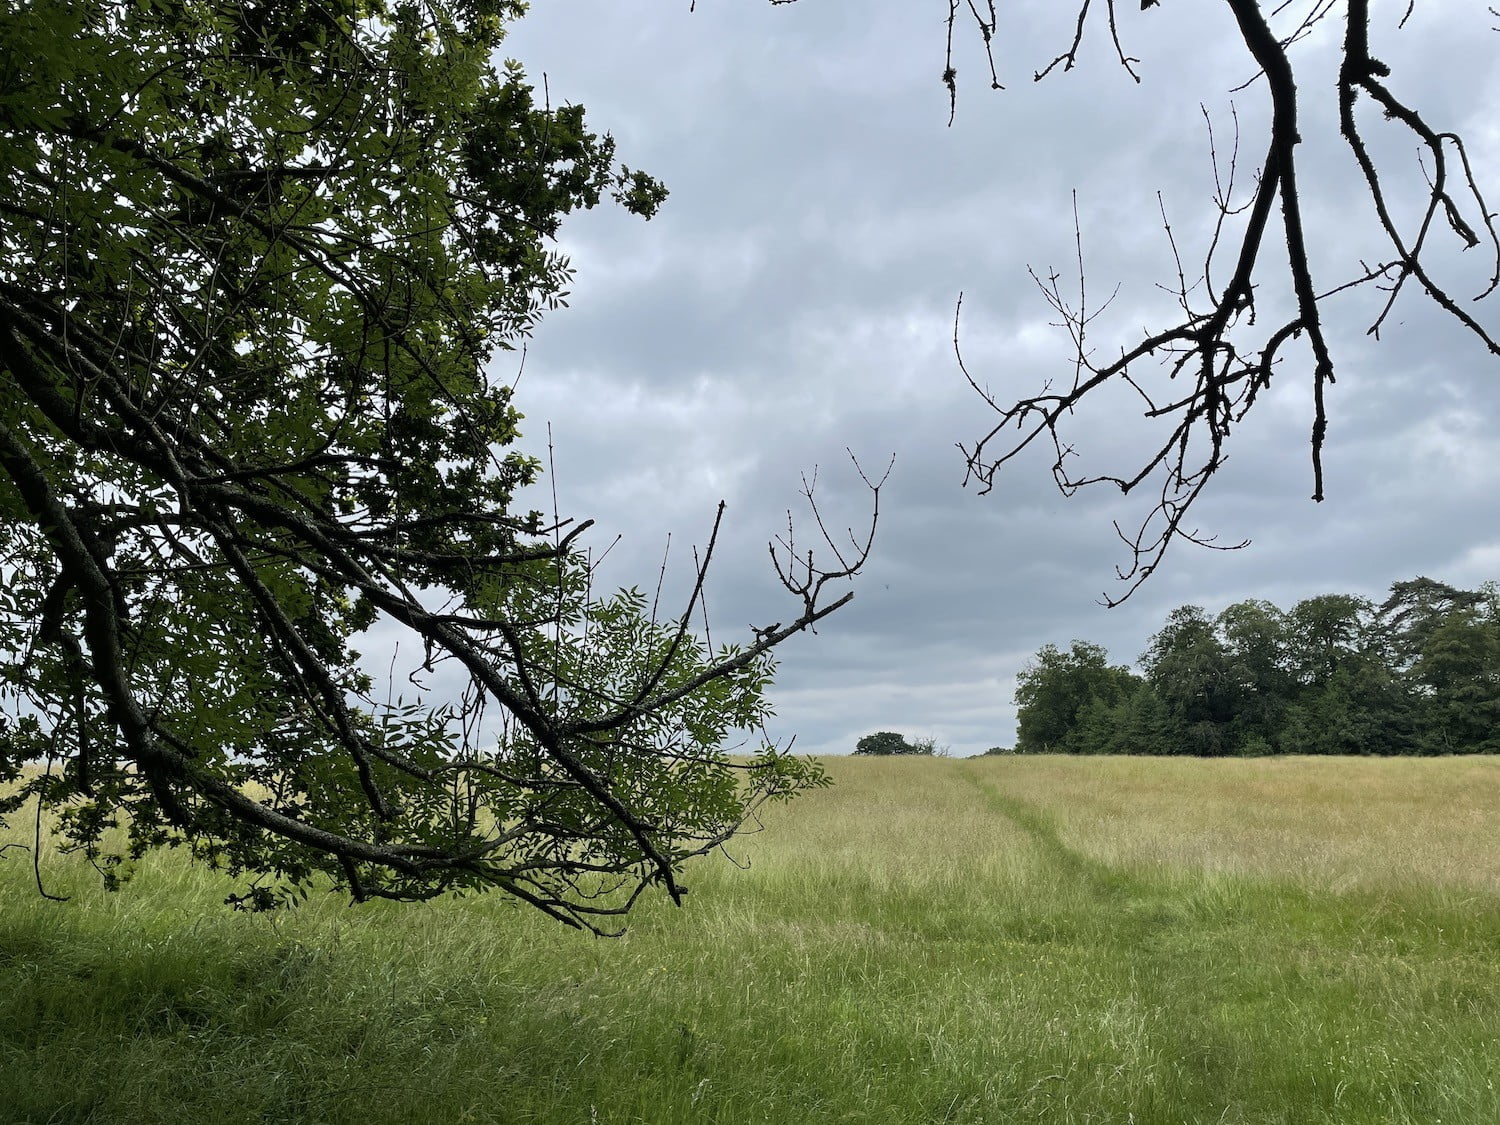 Photo of a field and trees taken with the iPhone 12 Pro